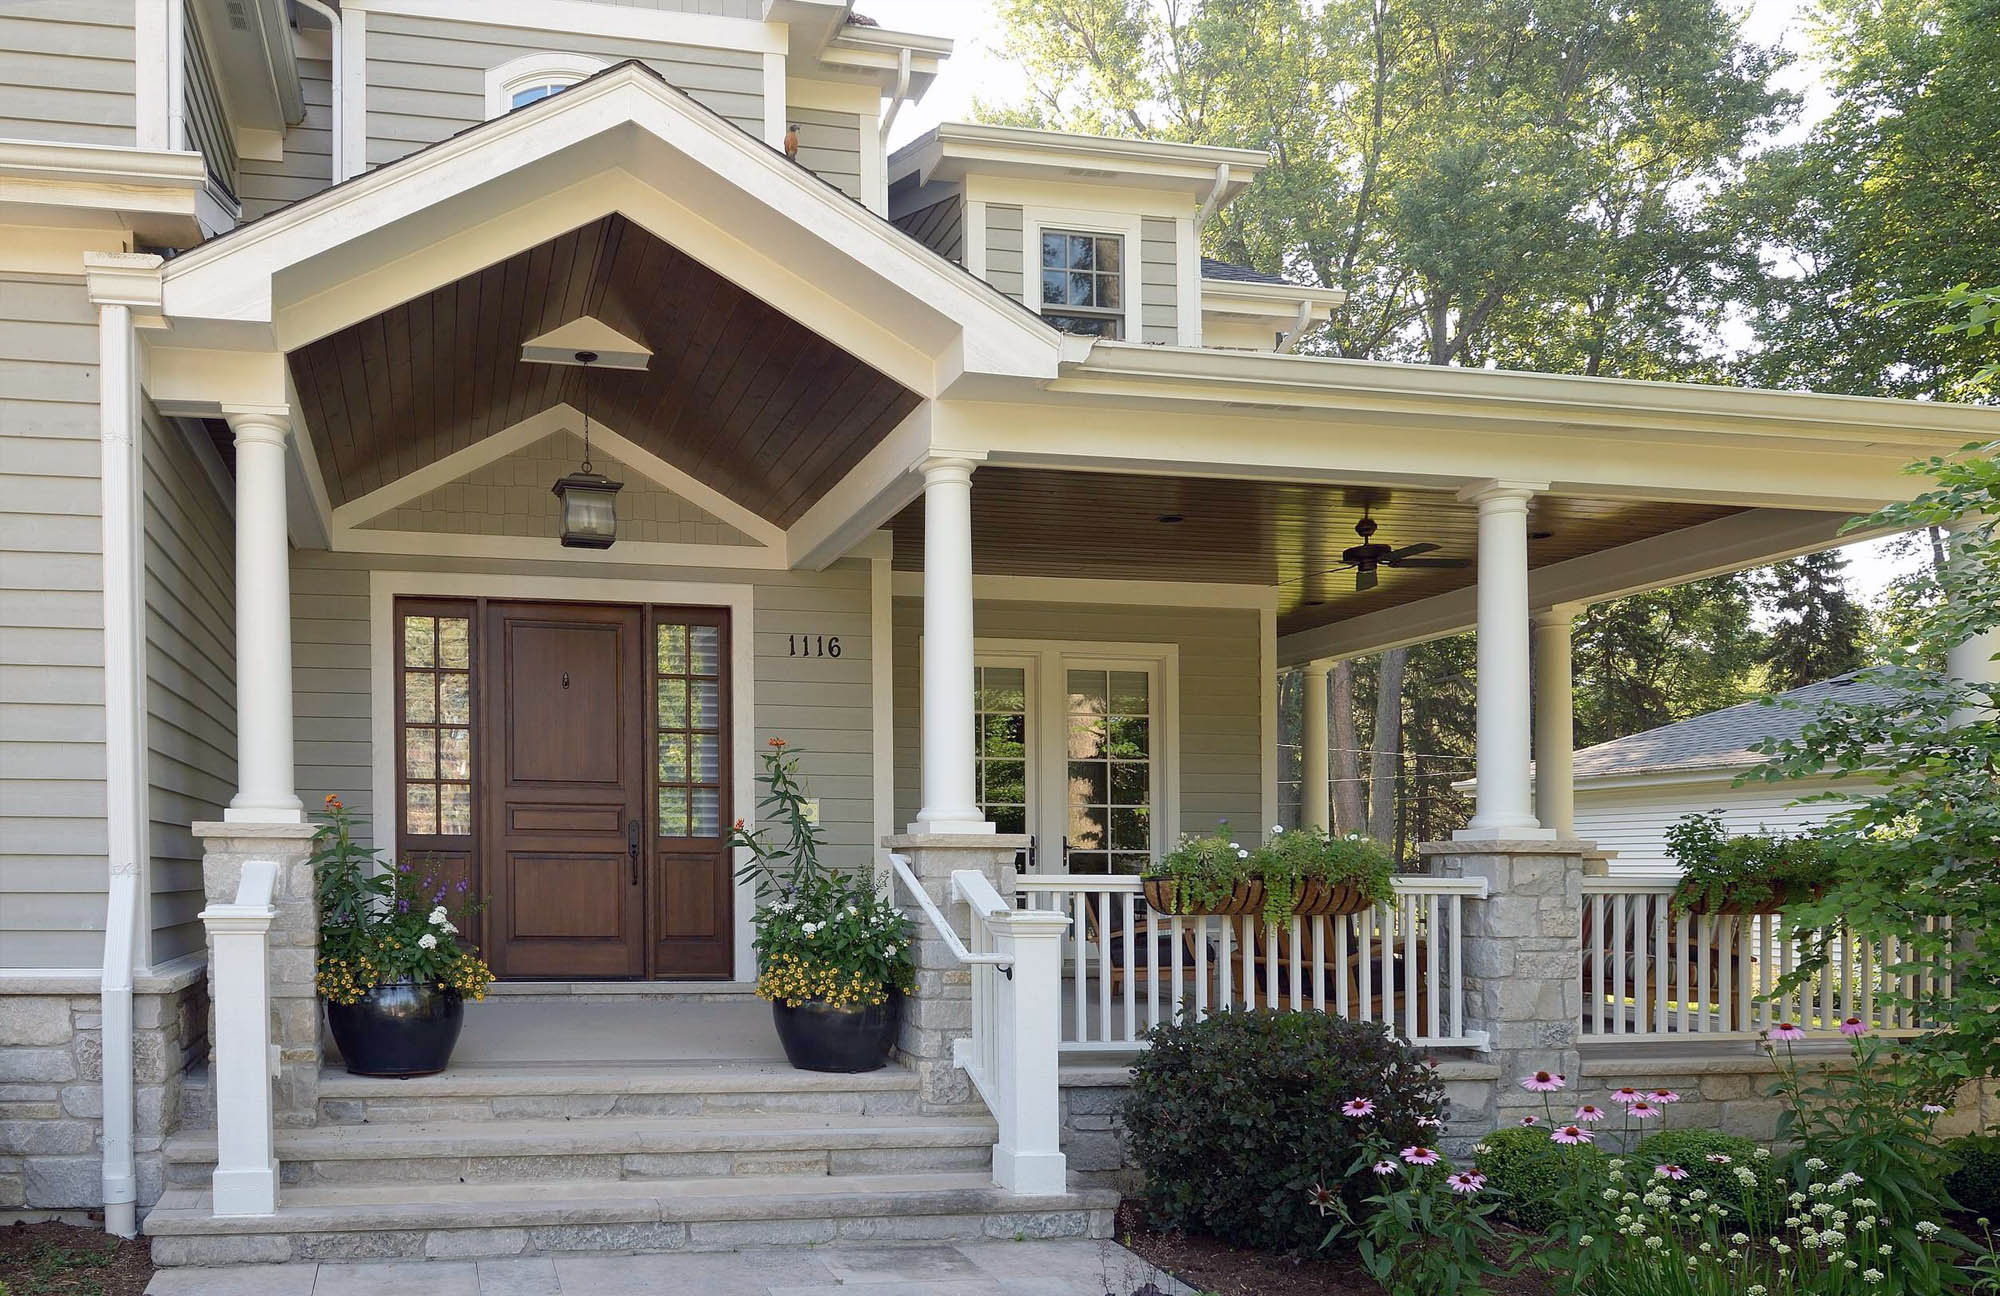 Beautiful custom home with pale green gray siding and real wood stained front door.